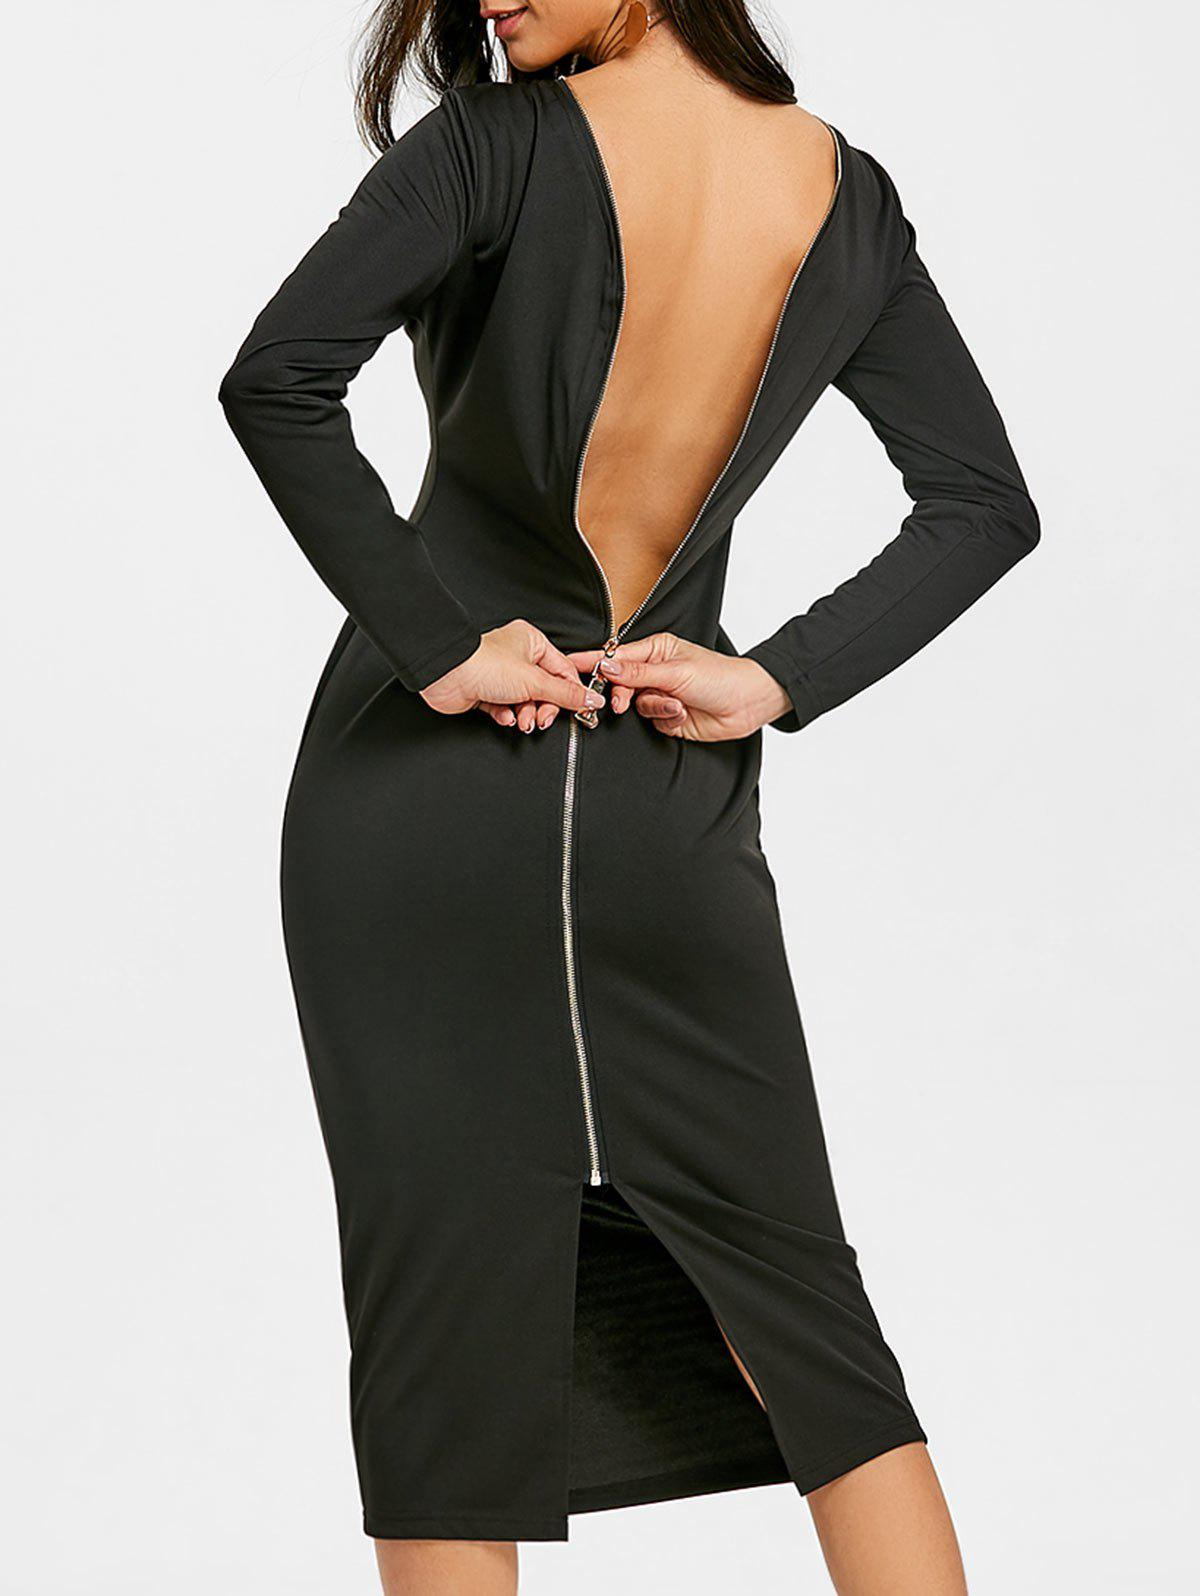 Store Long Sleeve Back Zip Up Bodycon Dress